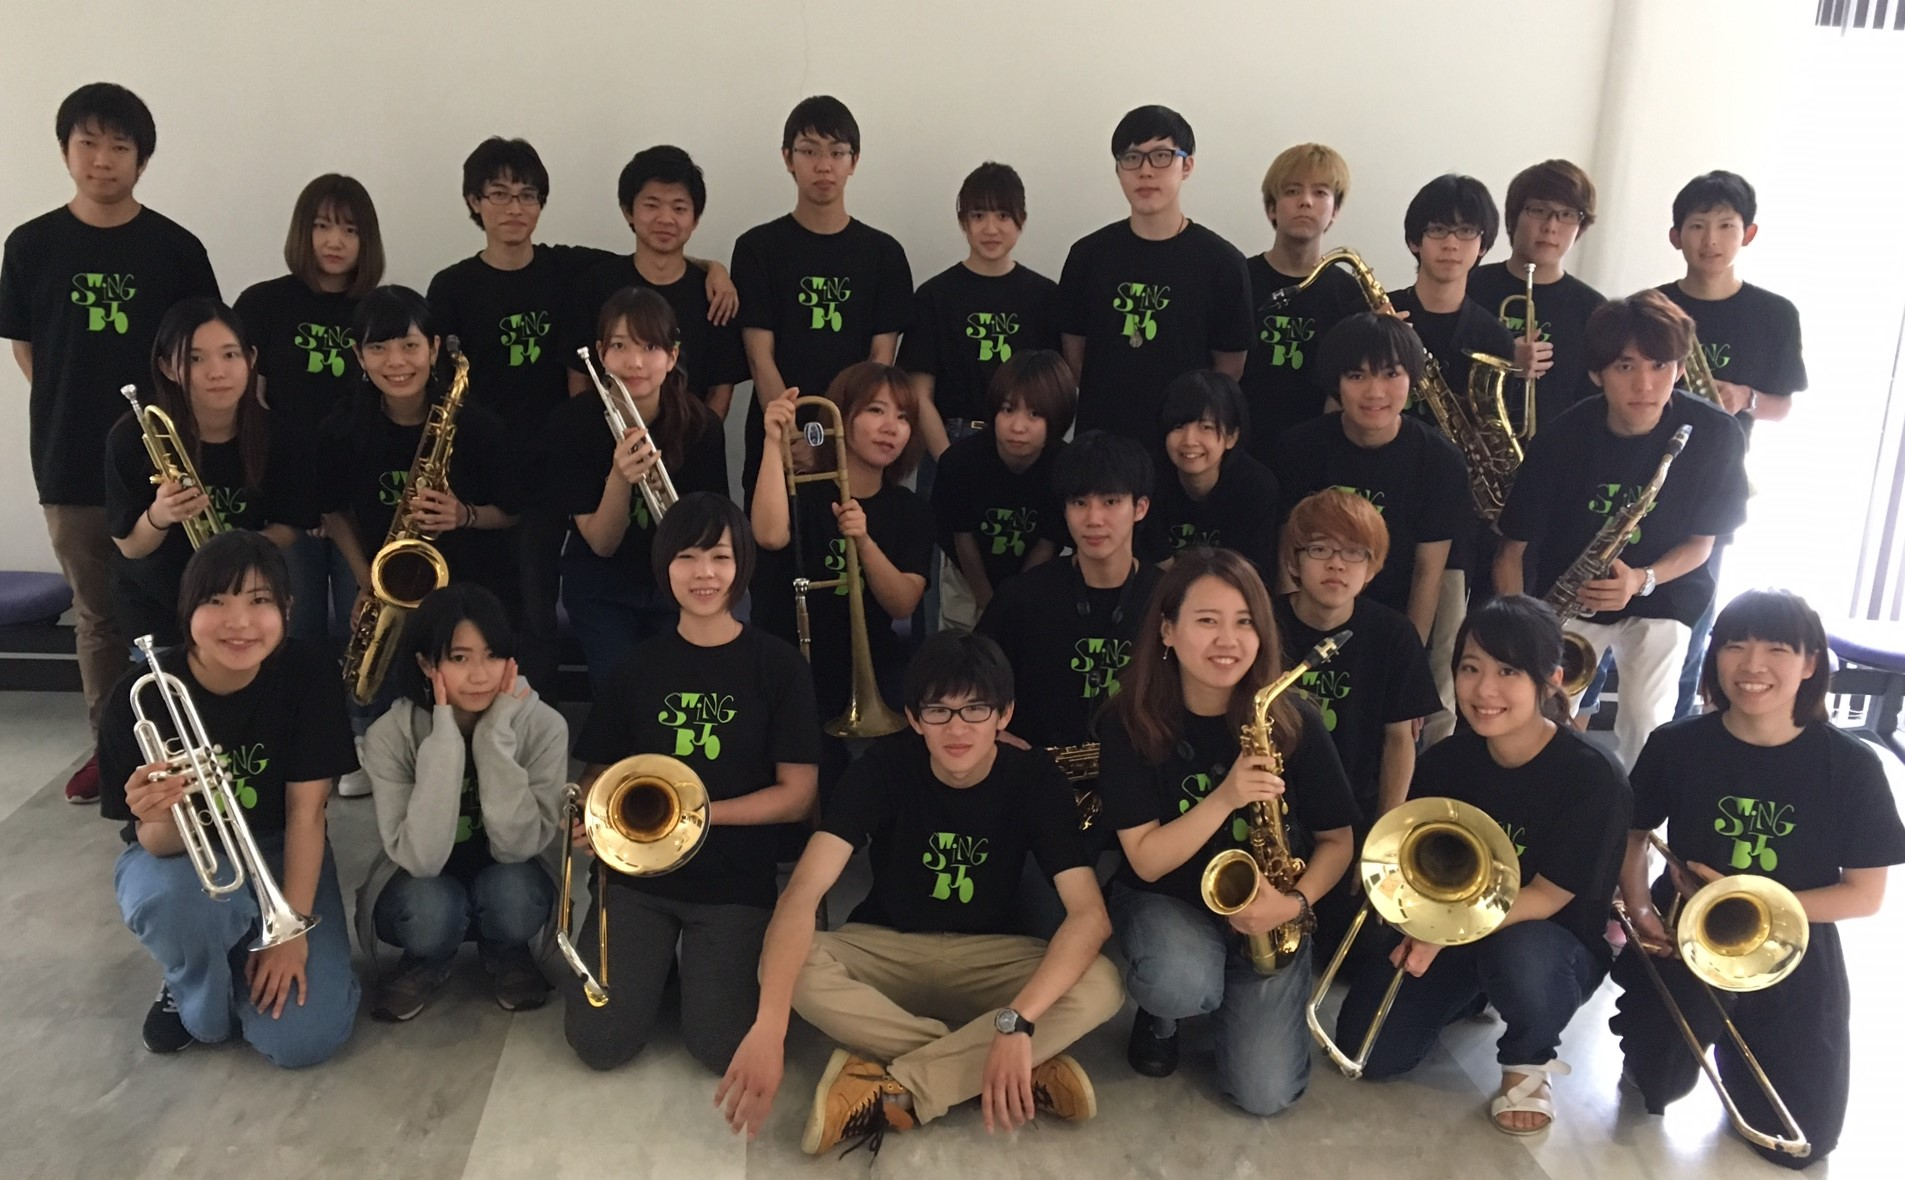 長崎大学 Swing Boat Jazz Orchestra